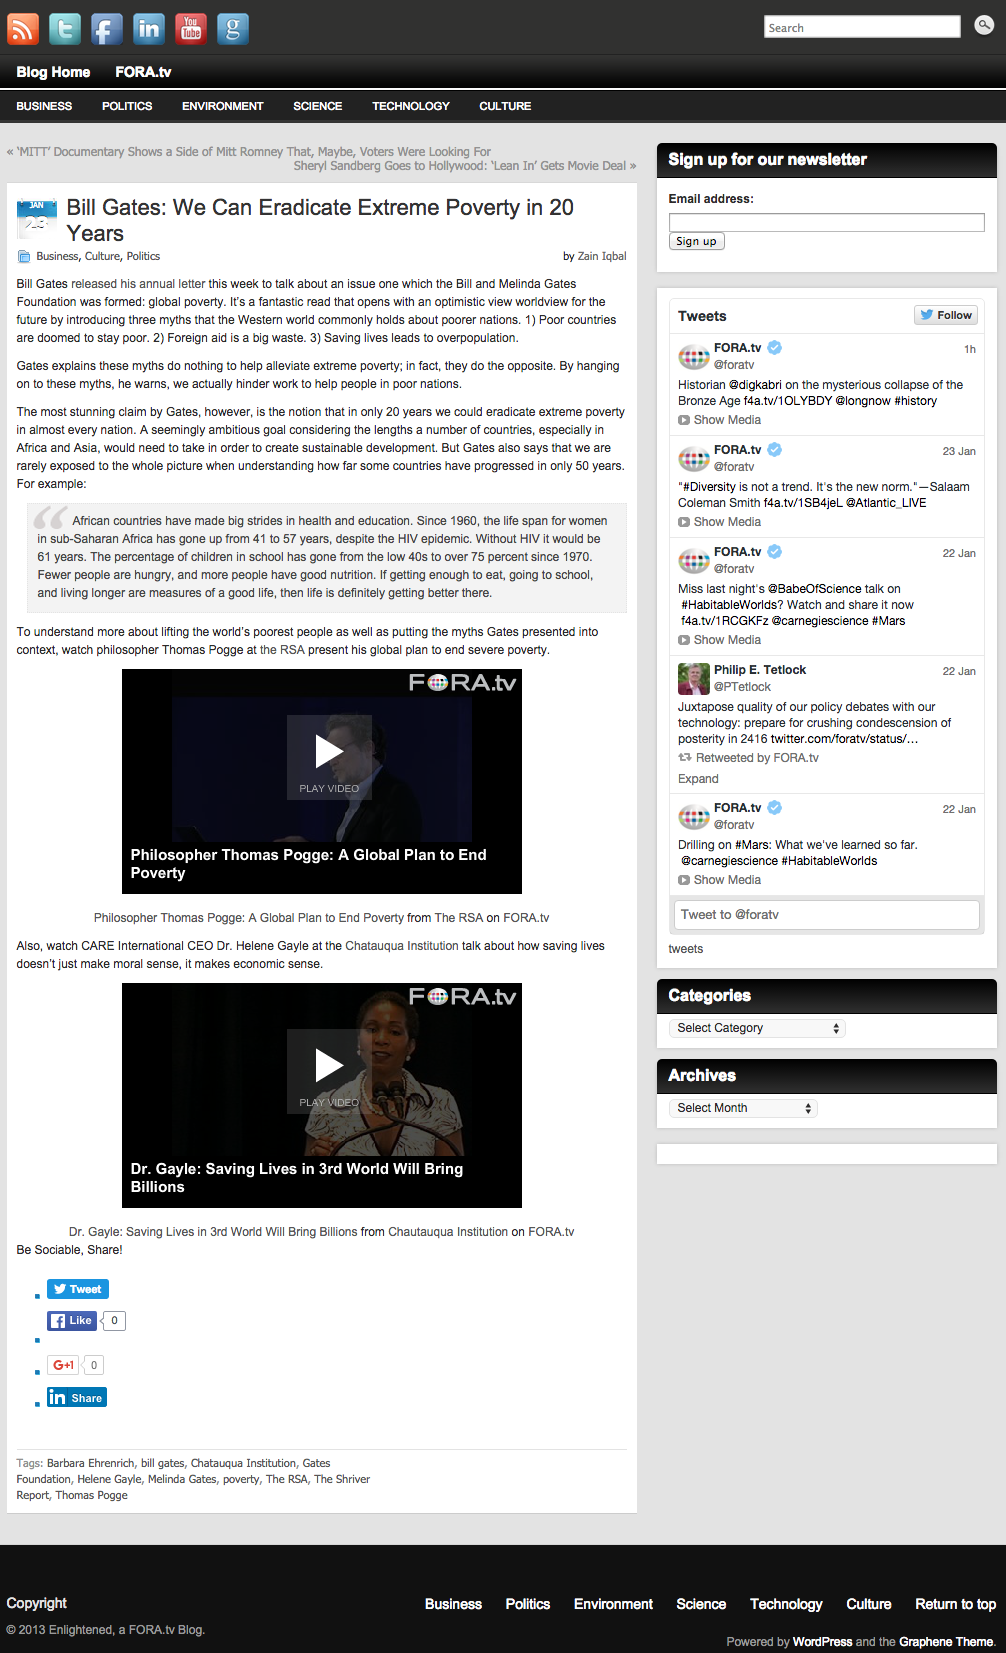 screencapture-enarchive-fora-tv-2014-01-bill-gates-poverty-eradicate-in-20-years.png